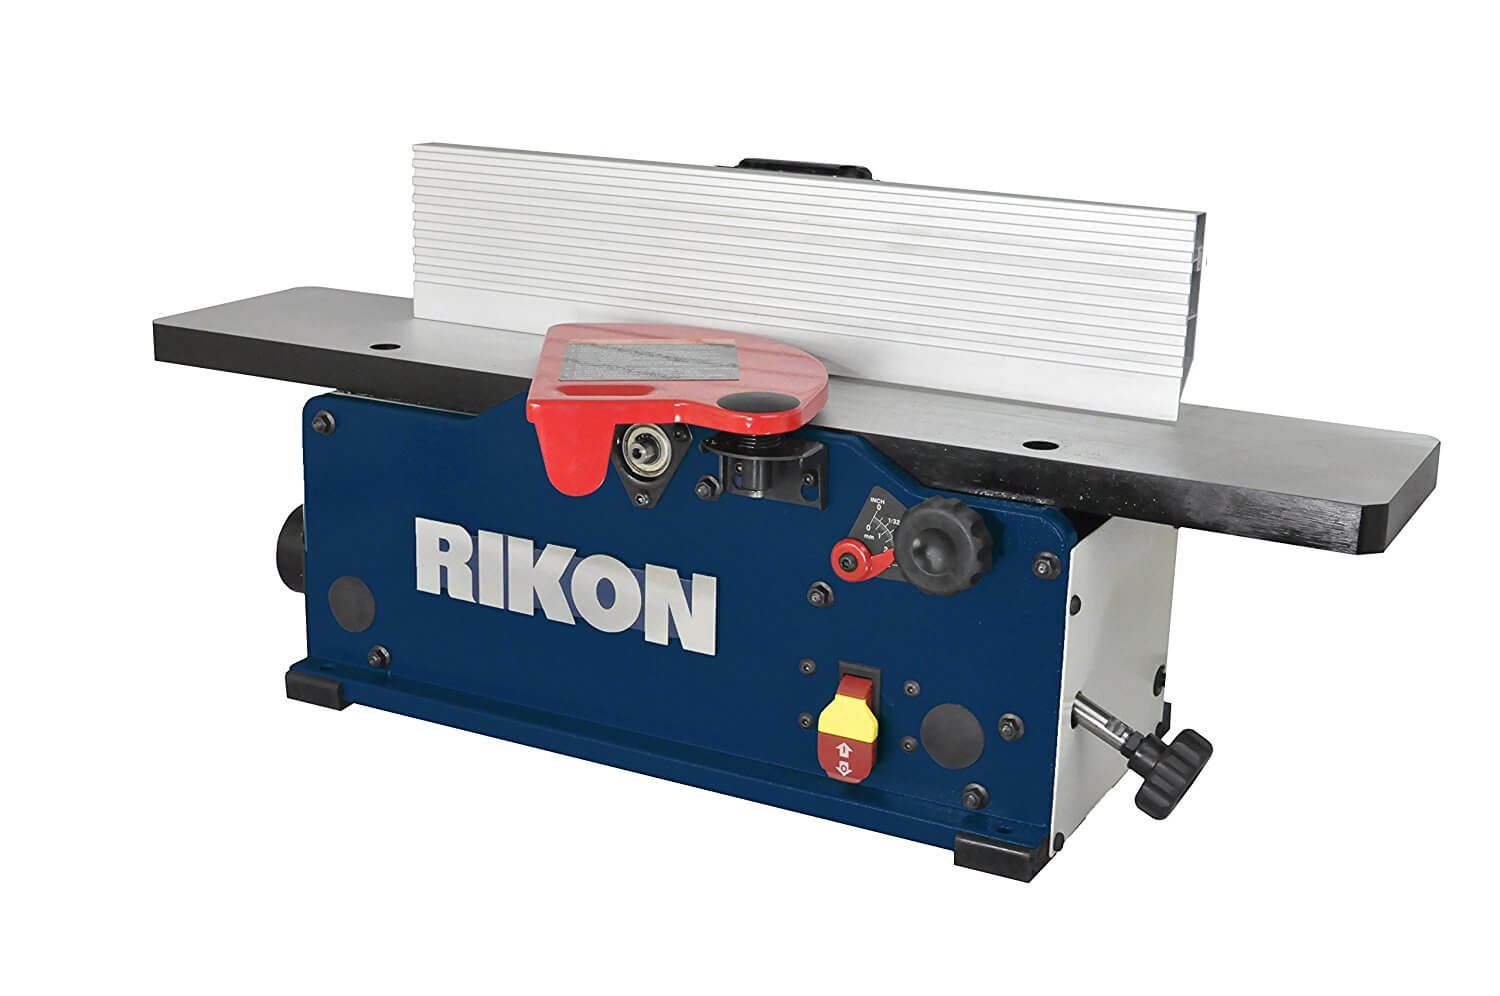 RIKON Power Tools bENCHTOP JOINTER